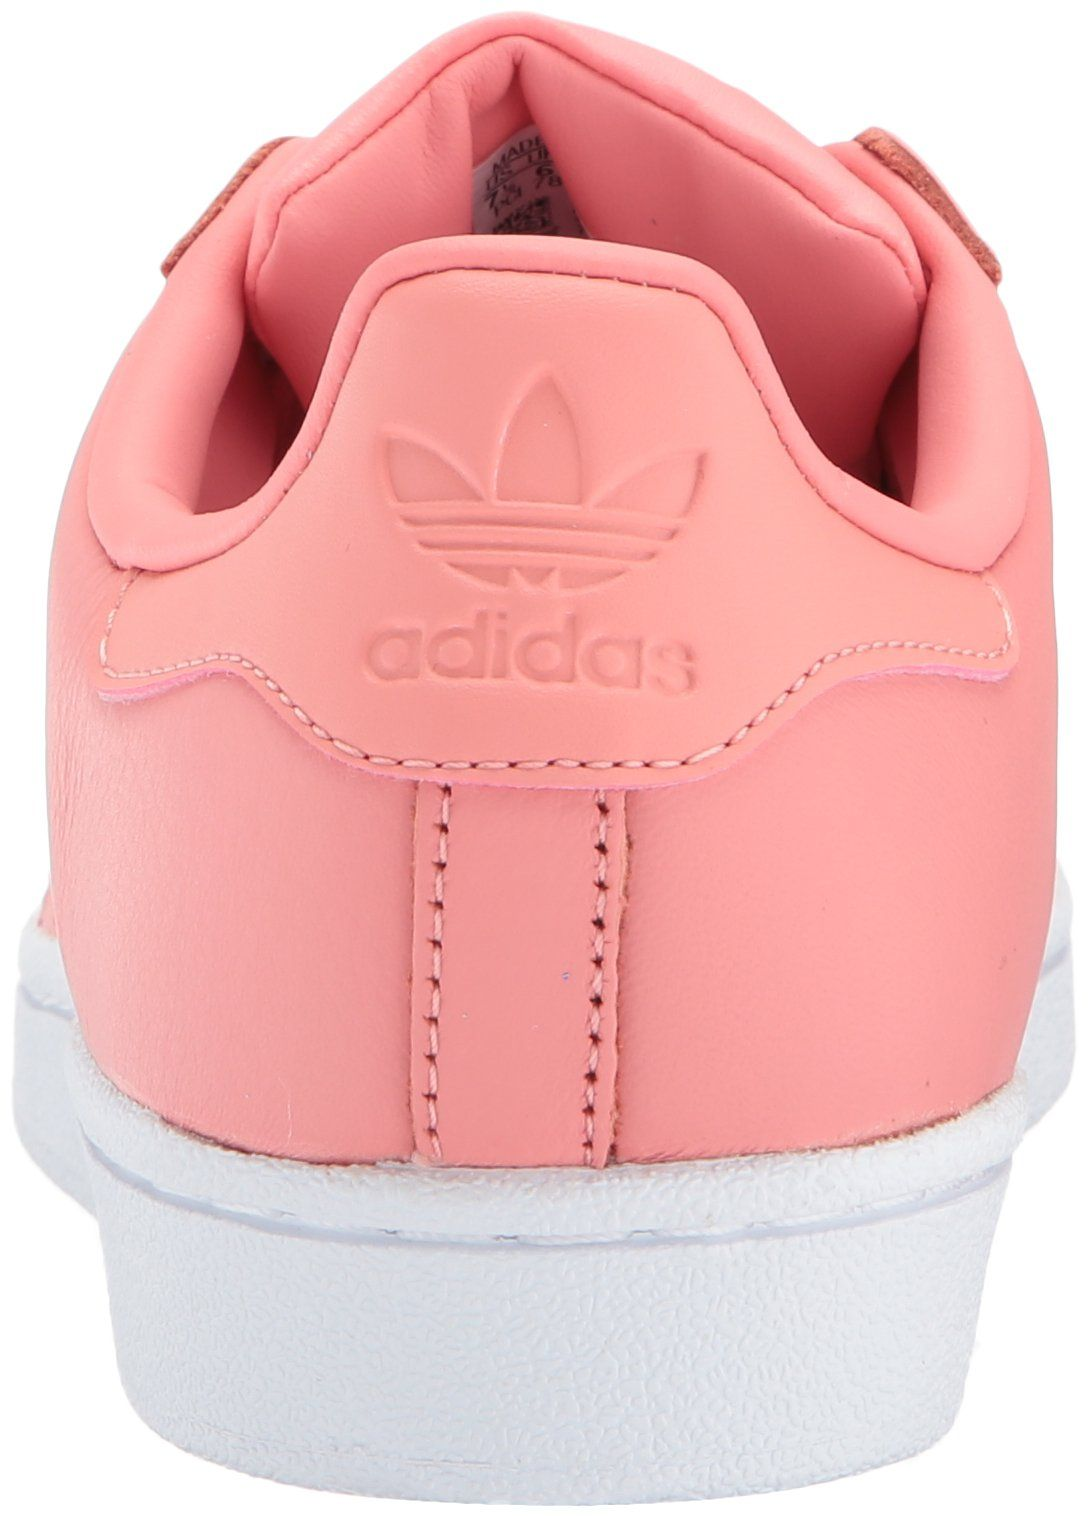 best service eea53 32c4f adidas Originals Womens Superstar Metal Toe W Skate Shoe Tactile Rose Tactile  Rose White 7 Medium US    Details can be found by clicking on the image.